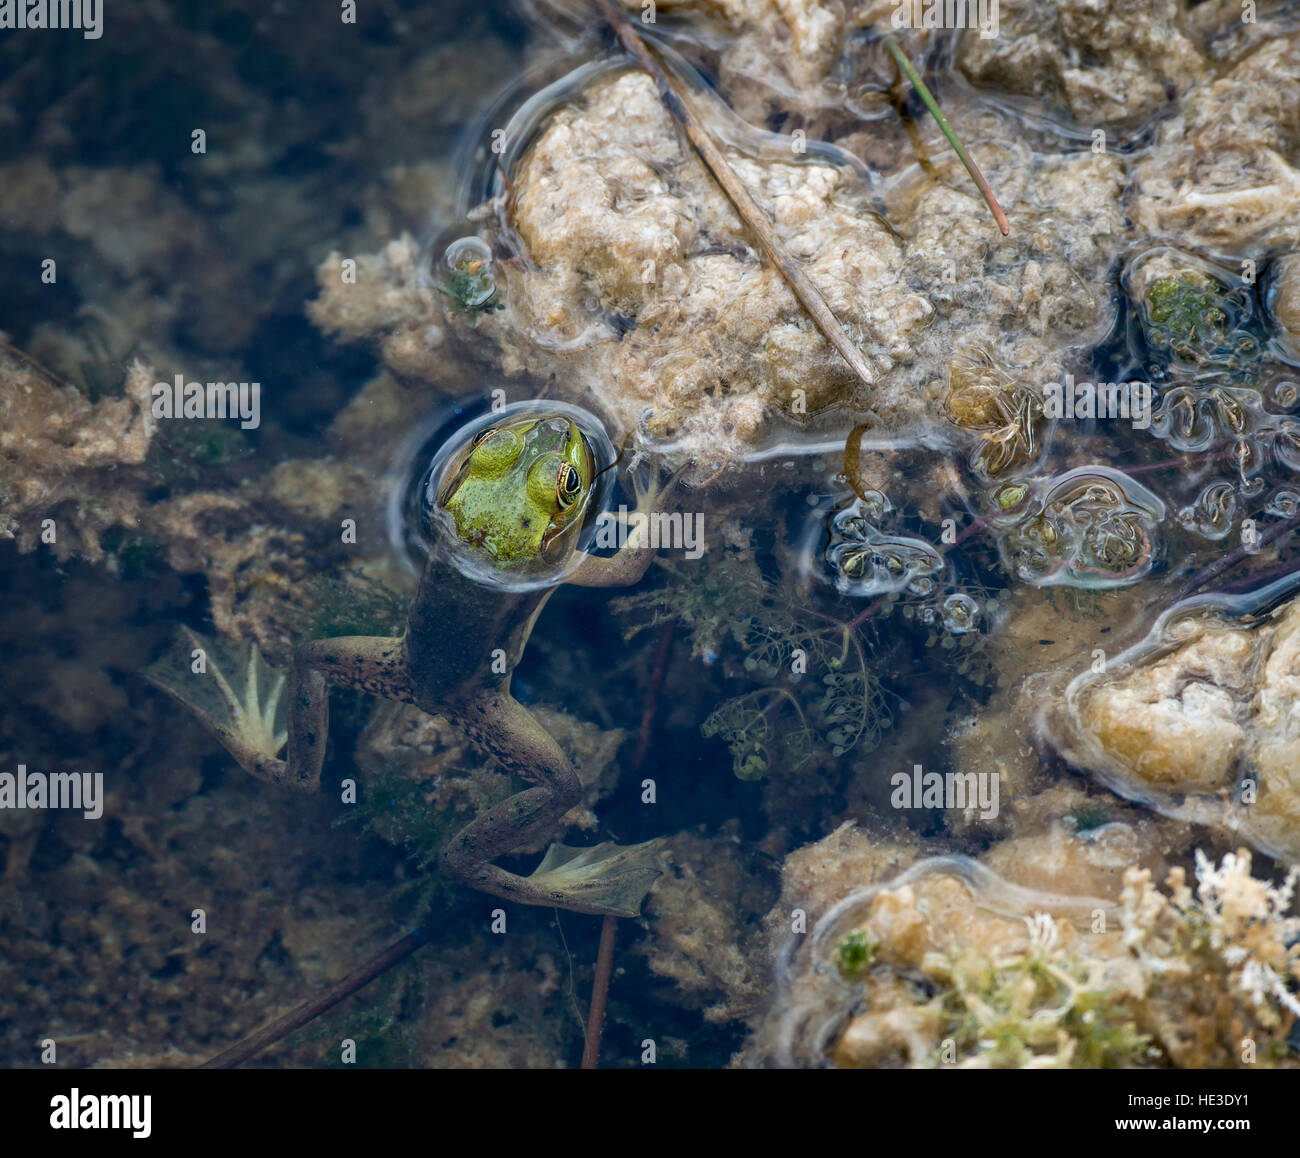 Pig Frog (Rana grylio) in shallow water, Everglades National Park - Stock Image